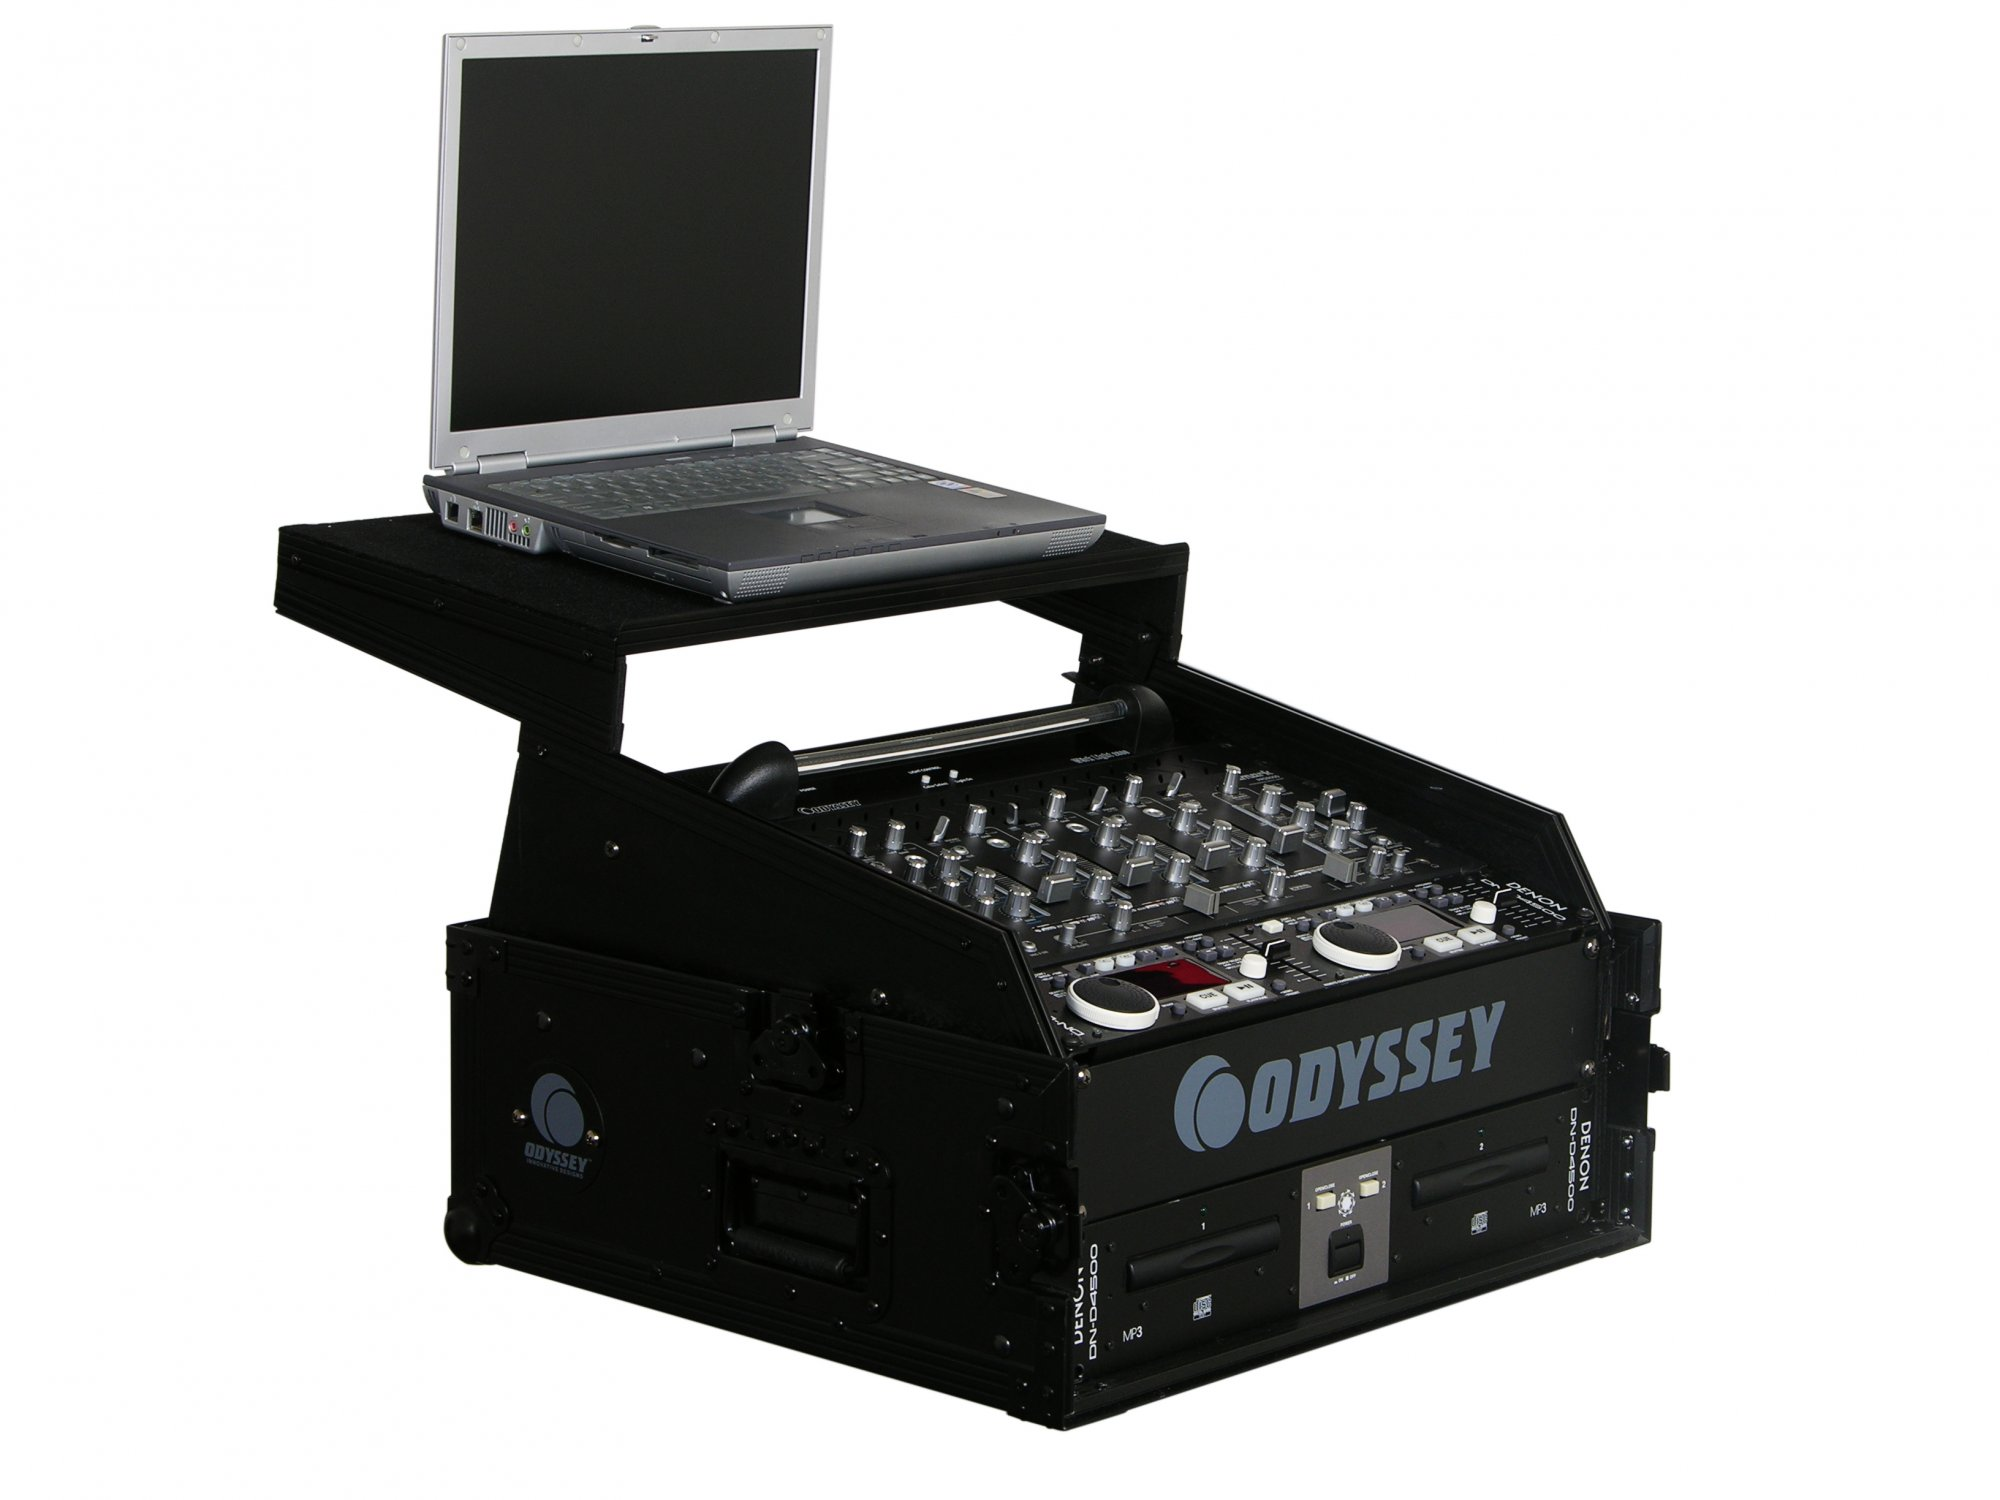 Odyssey Case FZGS1002BL - Combo Rack, 10 Space Top Rack, Glide Style, Black Label